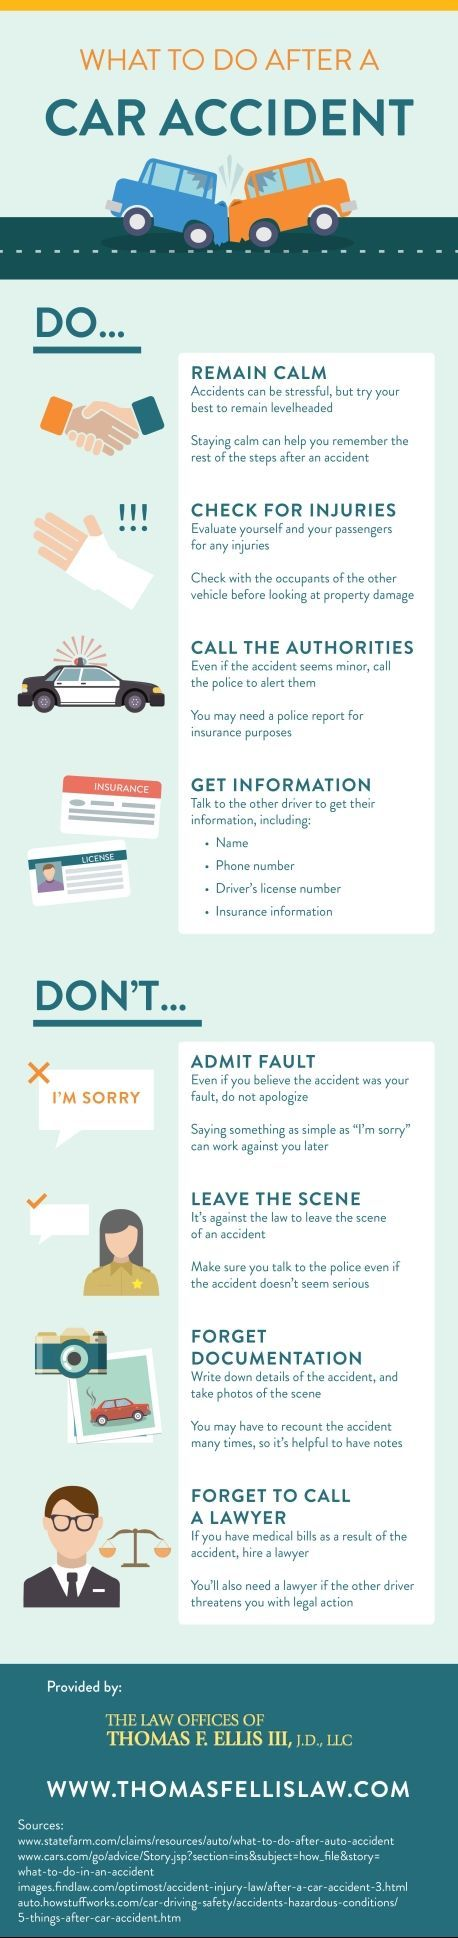 If you're ever in a car accident, here are the steps you should take after it occurs!